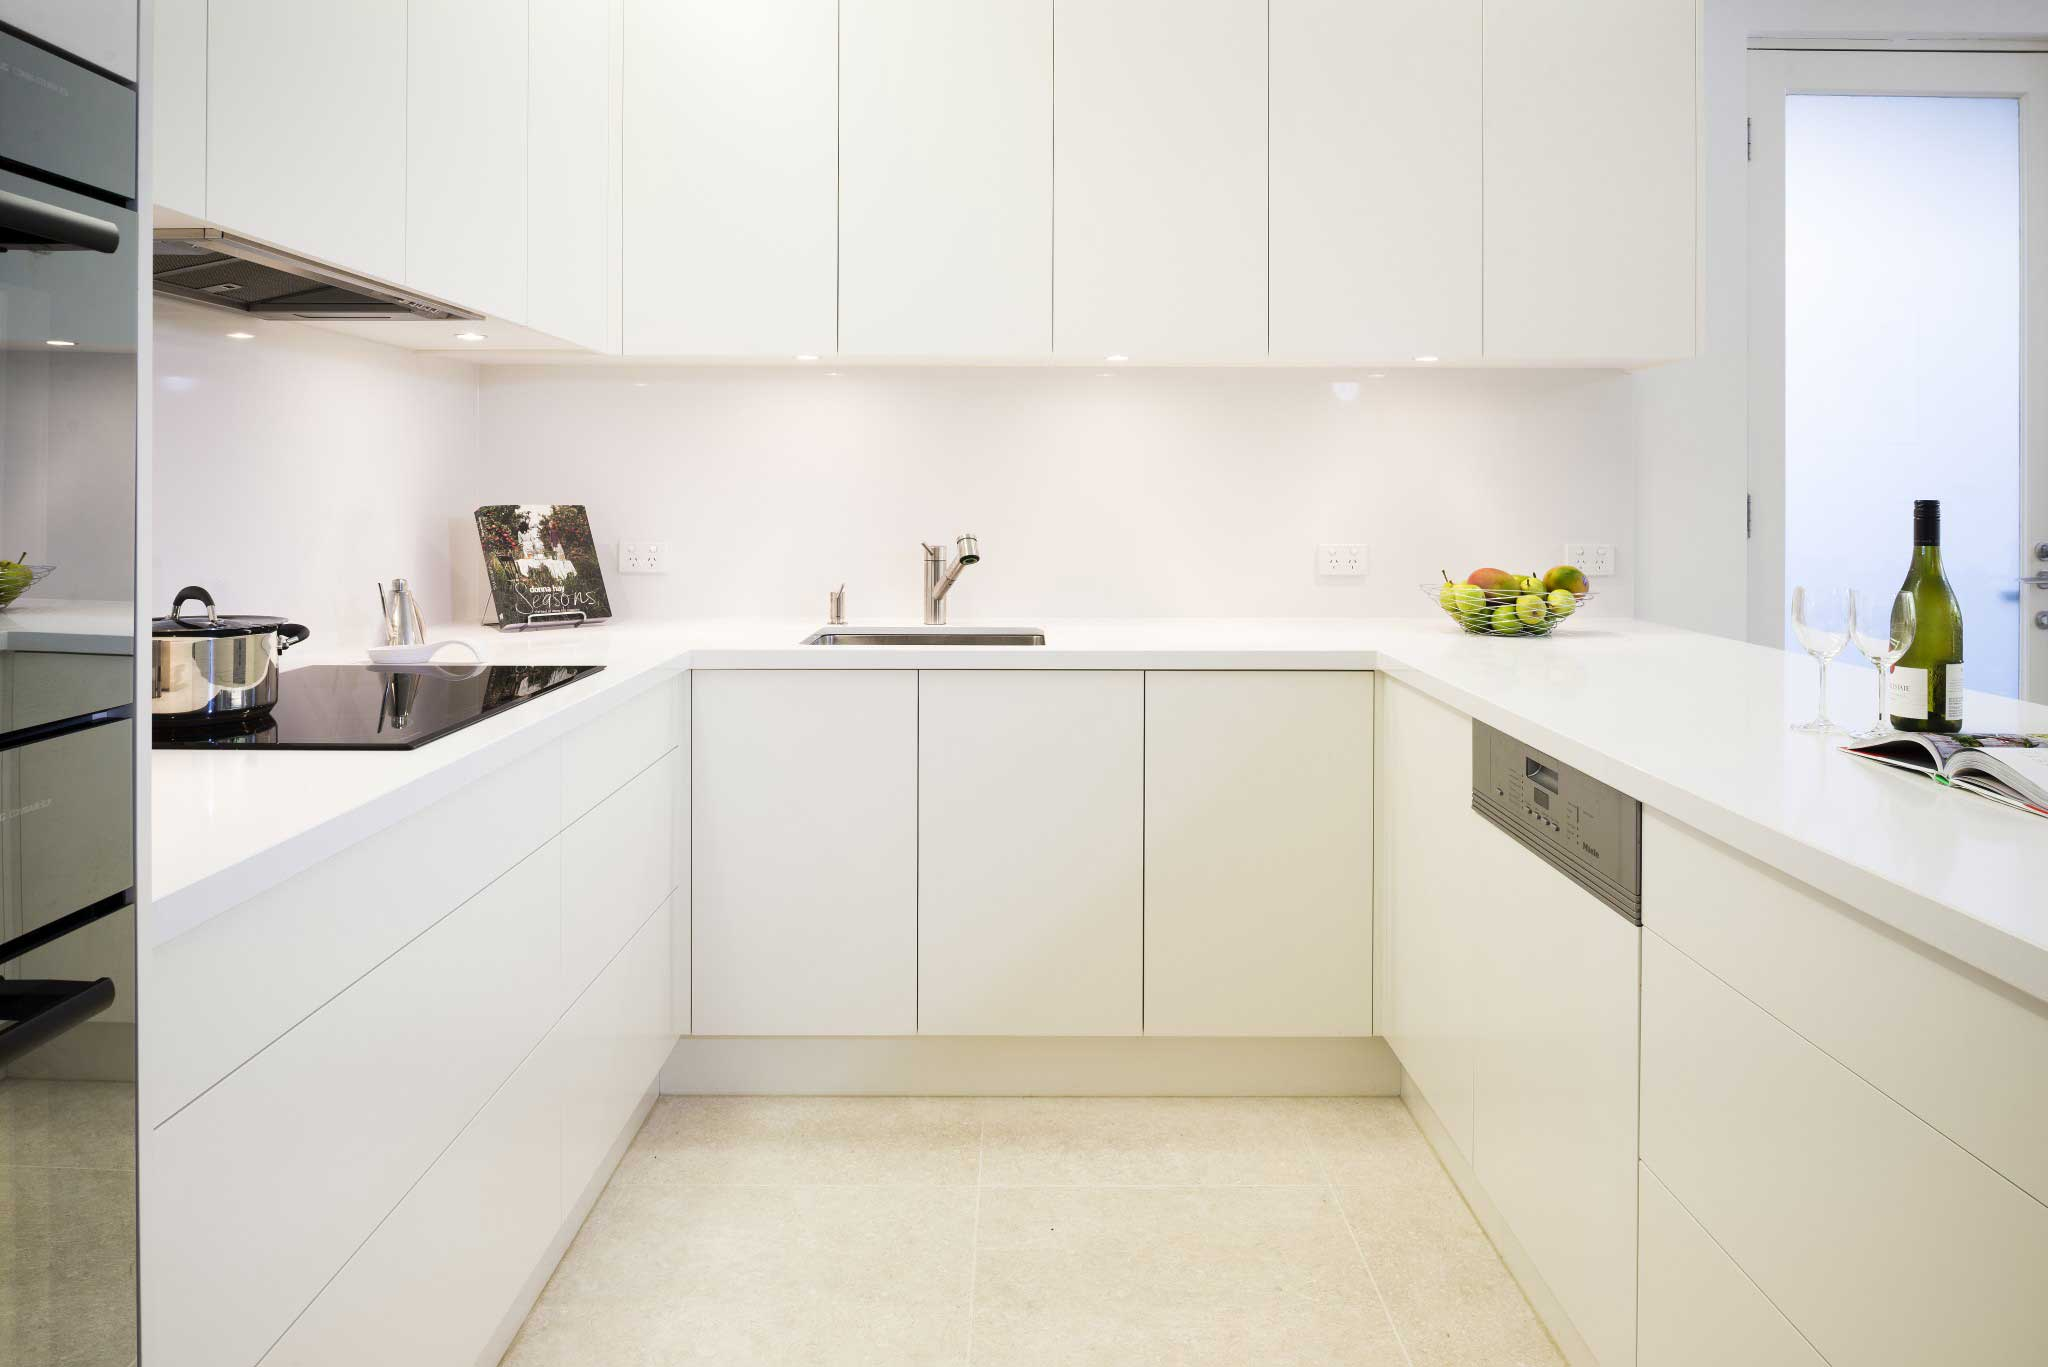 kitchen handles wood mode kitchens handleless rosemount image of a melbourne with cabinetry